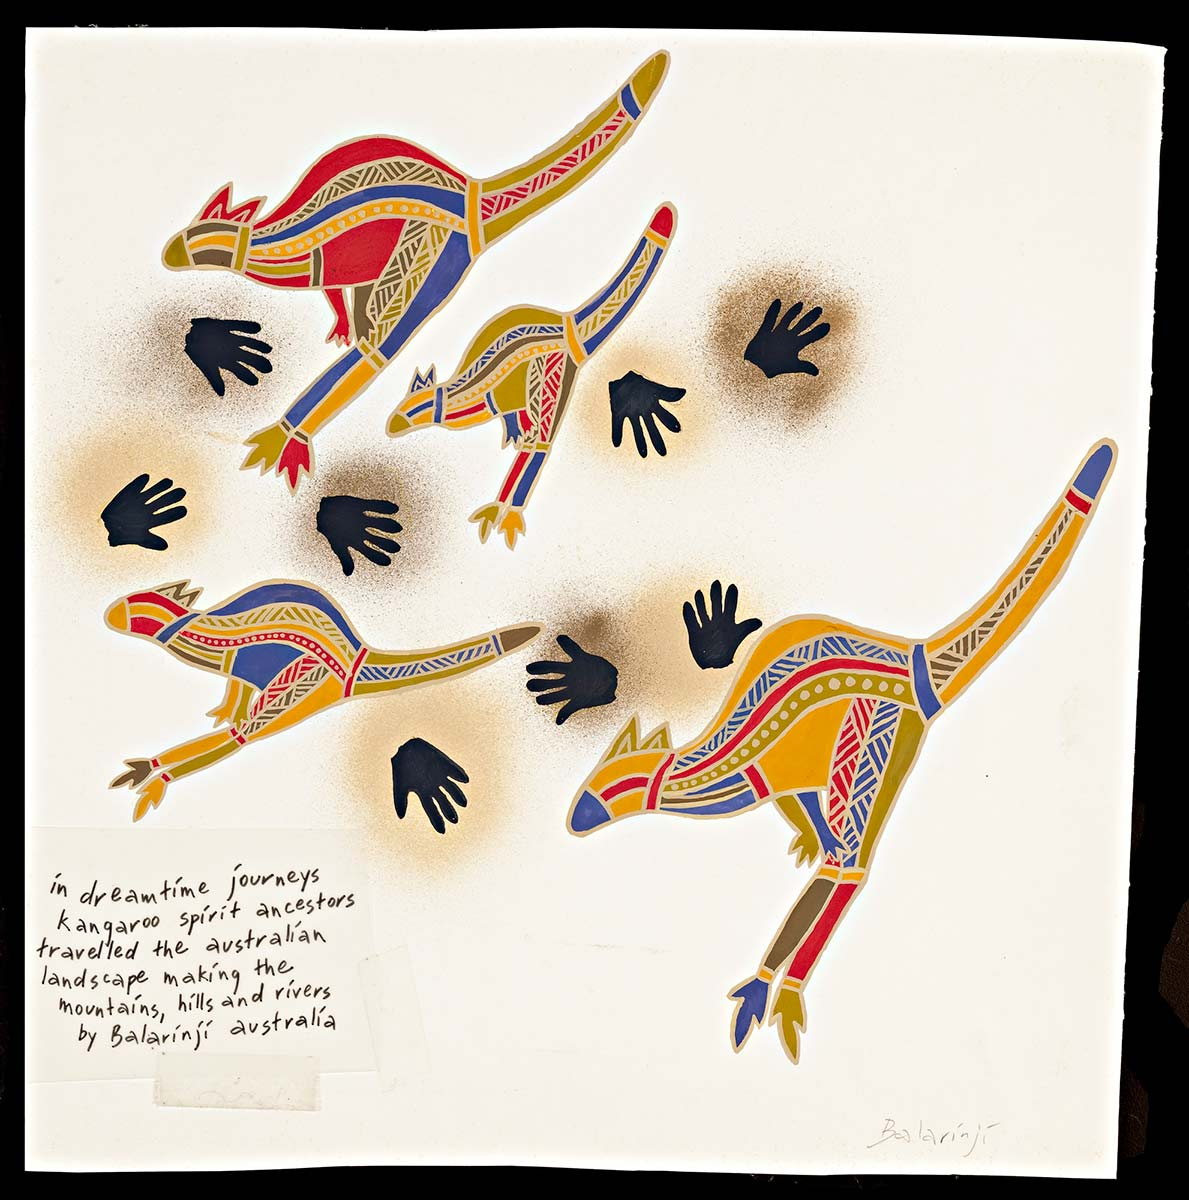 A gouache painting on paper. The design features four kangaroos of various sizes, facing left. Each kangaroo is multicoloured with red, blue, olive green, yellow ochre and brown in an X-ray style that is outlined in beige. There are several black handprints, each within dark ochre 'smudge'. In the lower left corner is a transparency of text taped on that reads 'in dreamtime journeys kangaroo spirit ancestors travelled ...'. The text 'Balarinji' is handwritten in pencil on the lower right hand corner of the art work. - click to view larger image